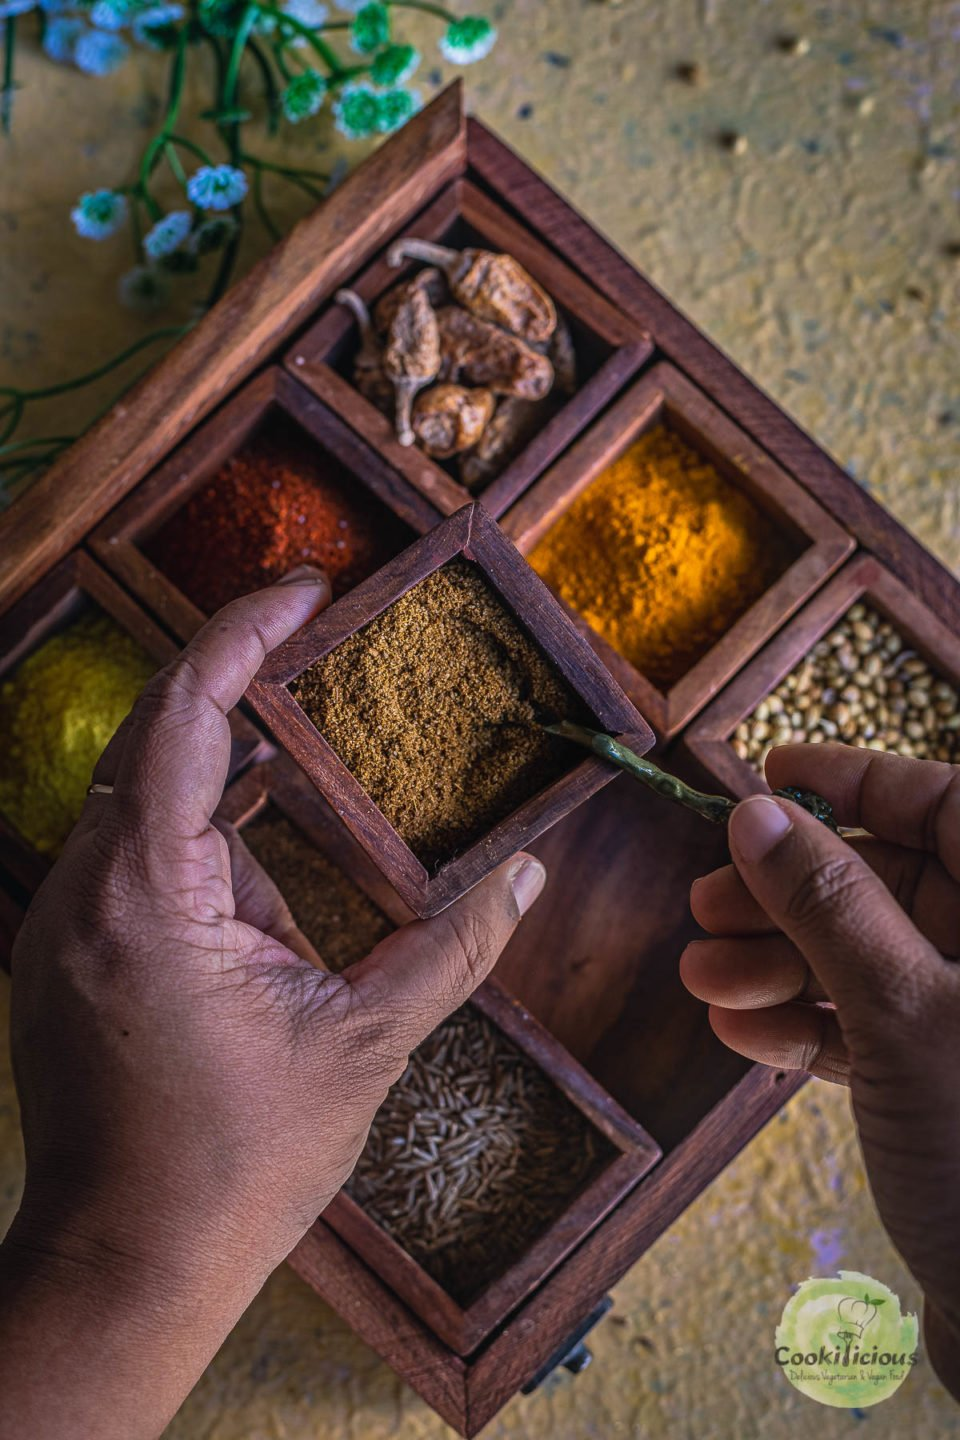 a set of hands putting a spoon into a spice box container which has ground cumin